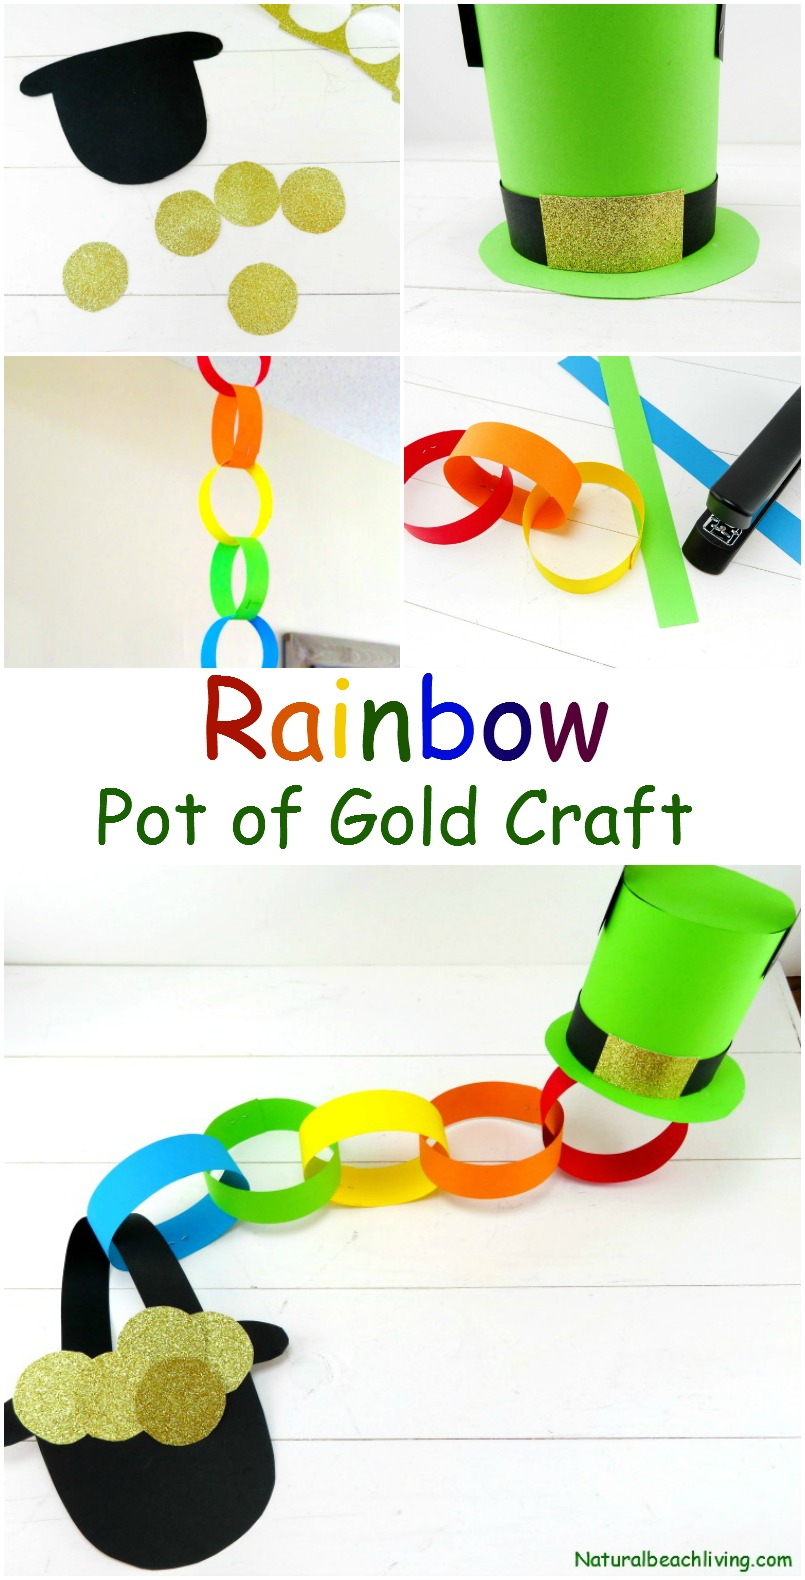 Rainbow Pot of Gold Craft Idea for St Patrick's Day